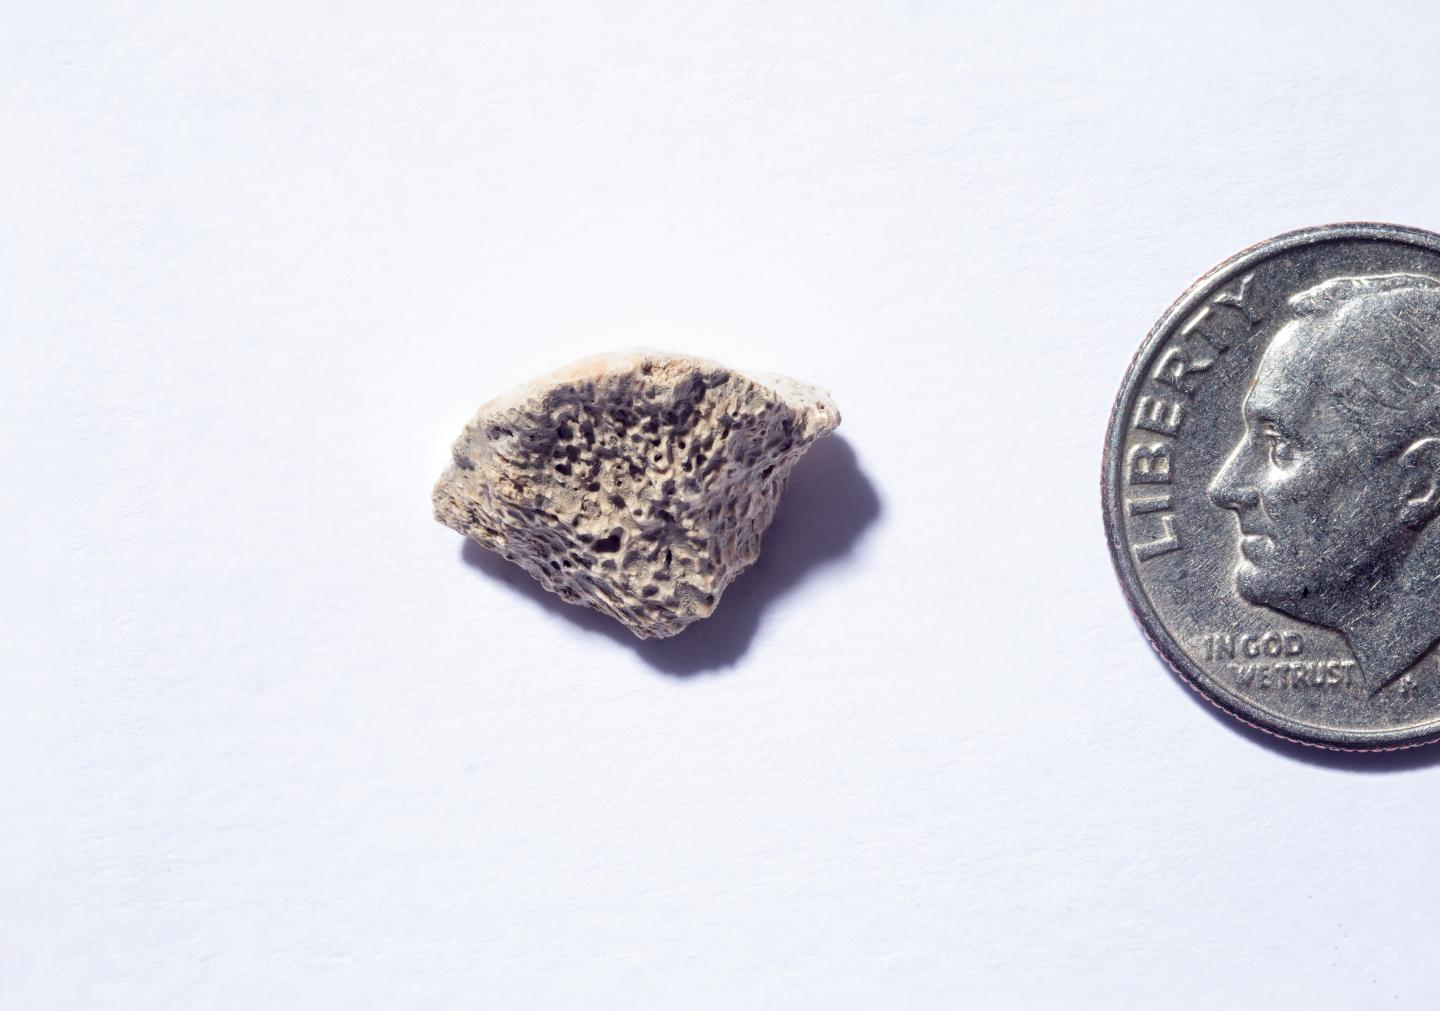 Ancient dog bone (shown with coin for interpreting size)